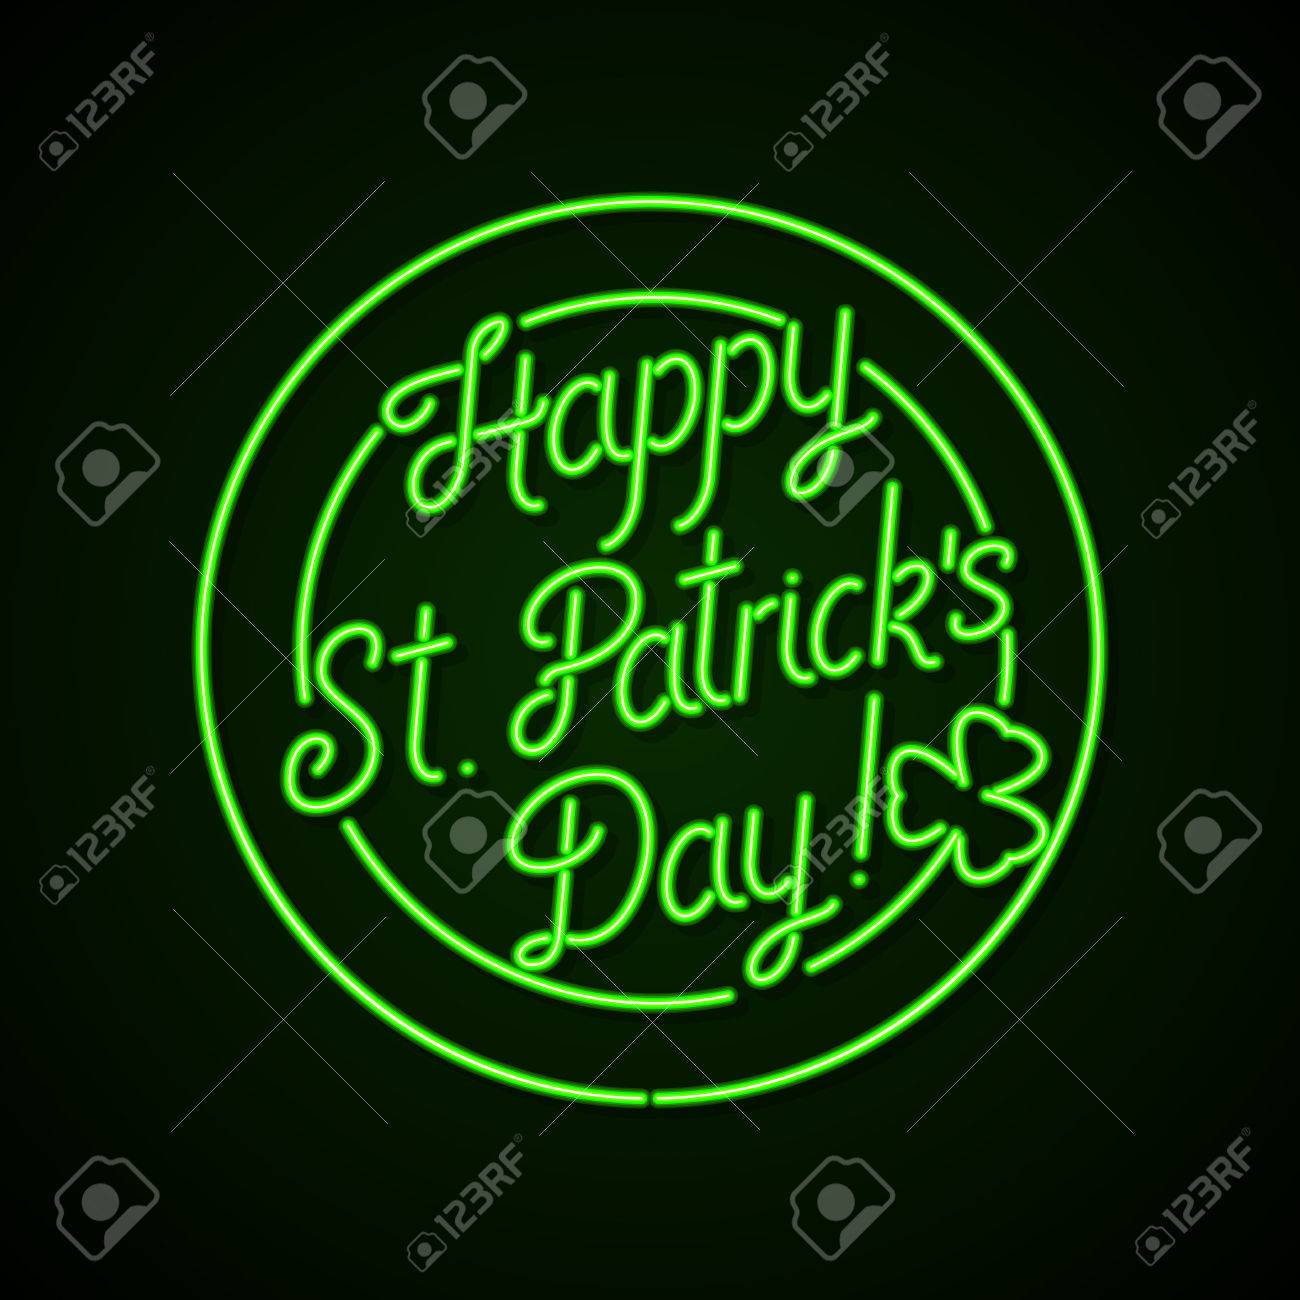 2110325c Glowing neon sign - Happy St. Patrick's Day lettering with shamrock on a  dark green